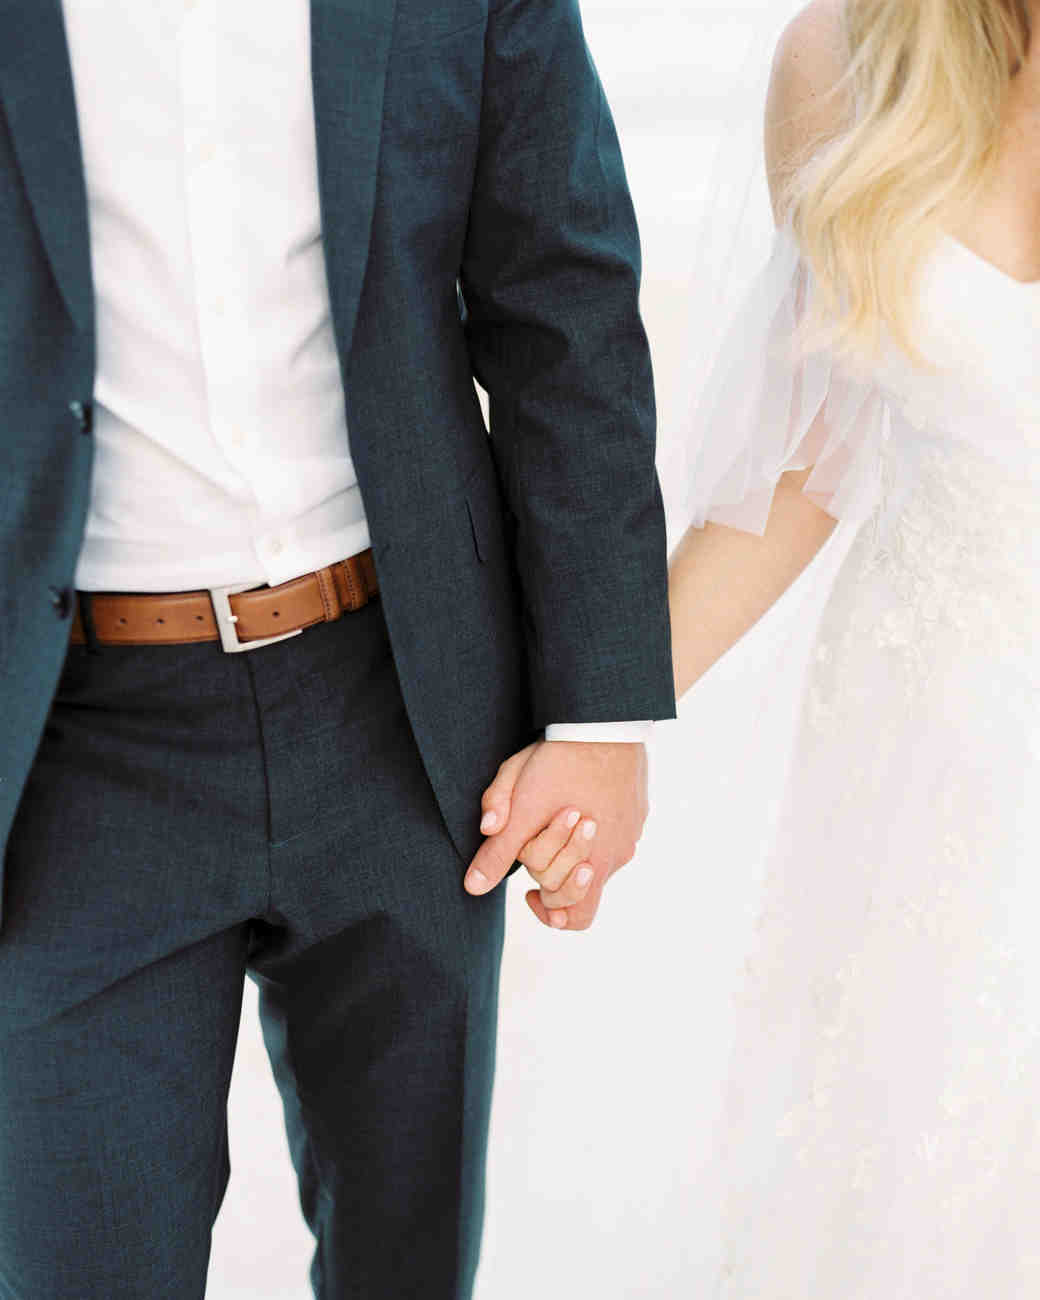 close-up of wedding couple holding hands